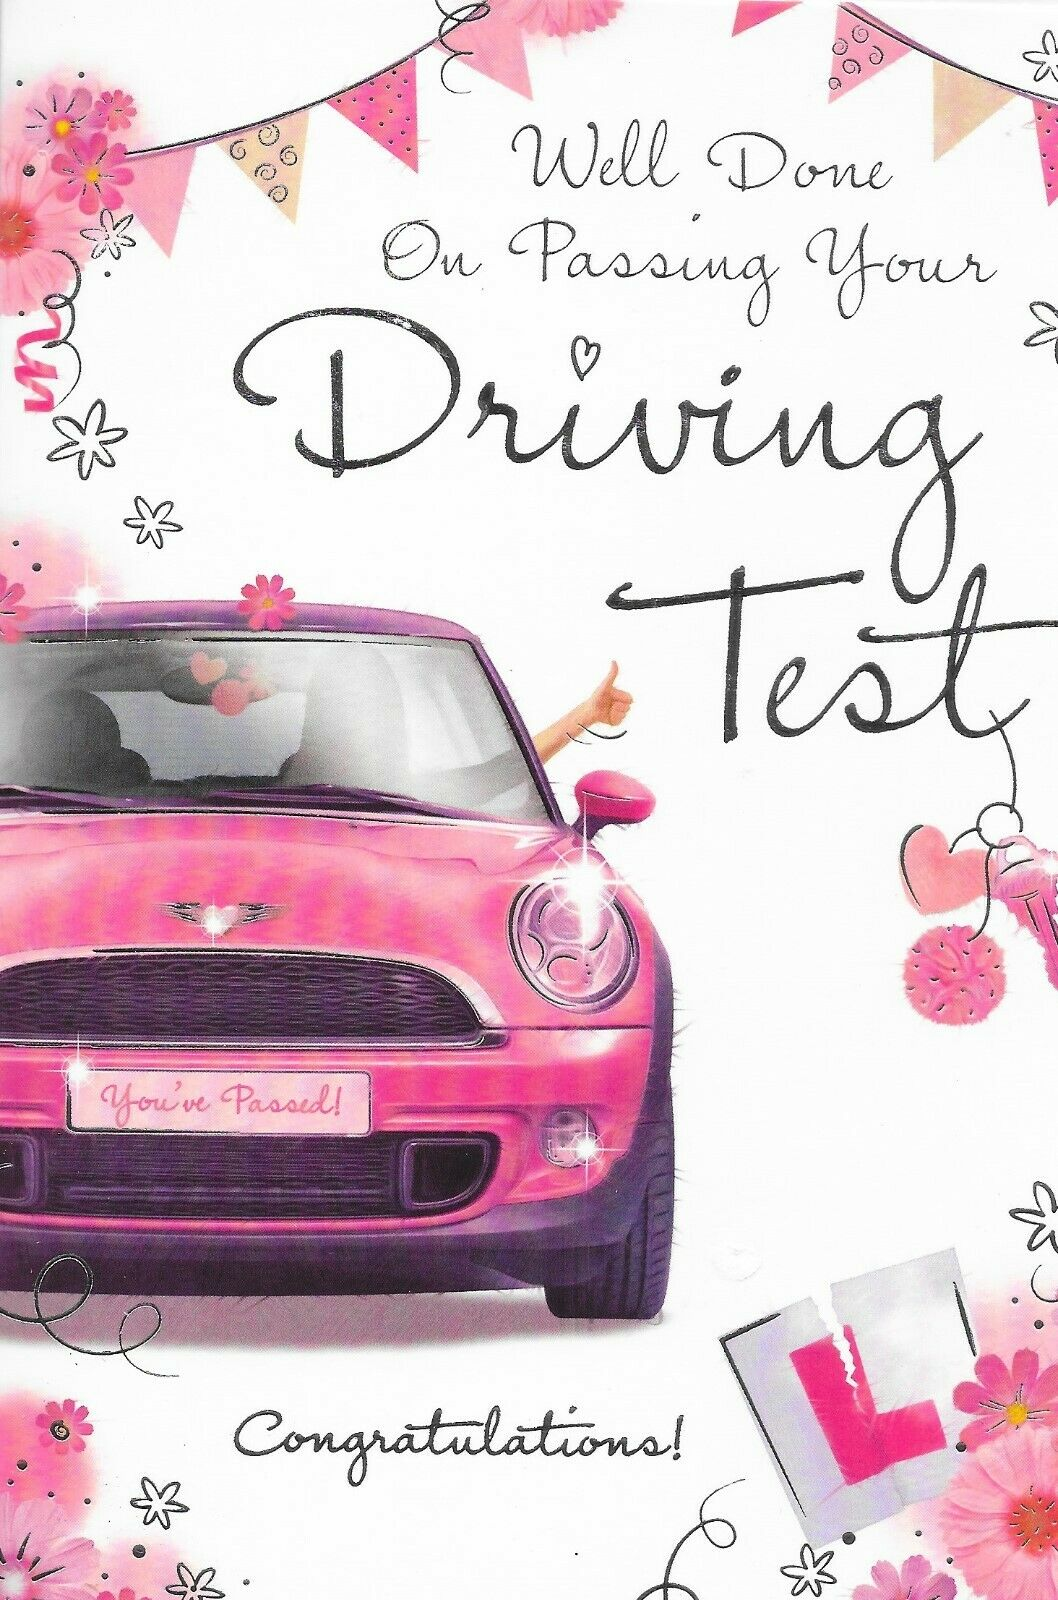 New you/'ve passed your driving test congratulations card